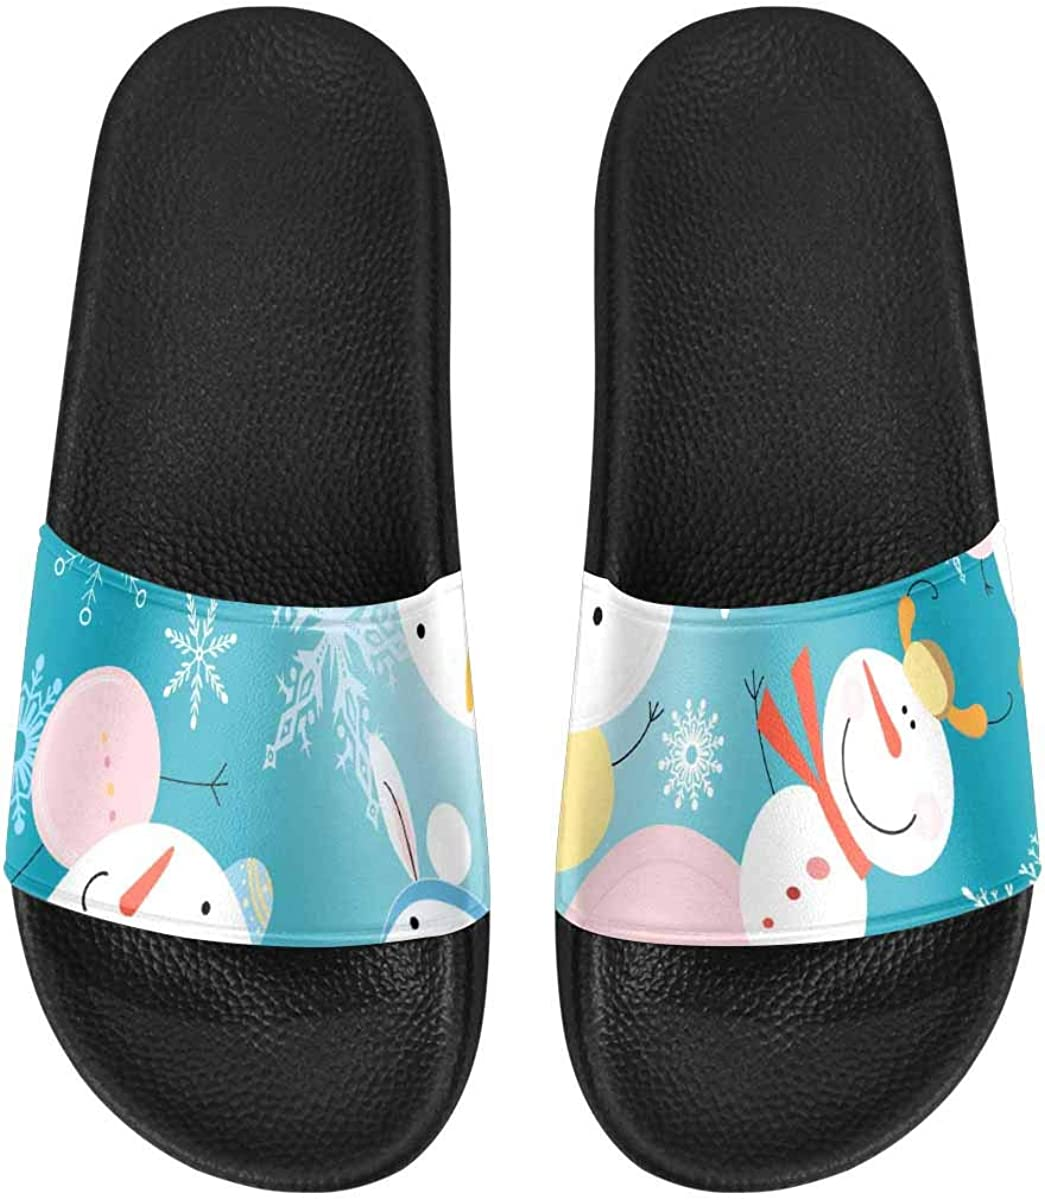 InterestPrint Women's Outdoor Sandals Breathable and Comfortable Bones and Balls Pattern